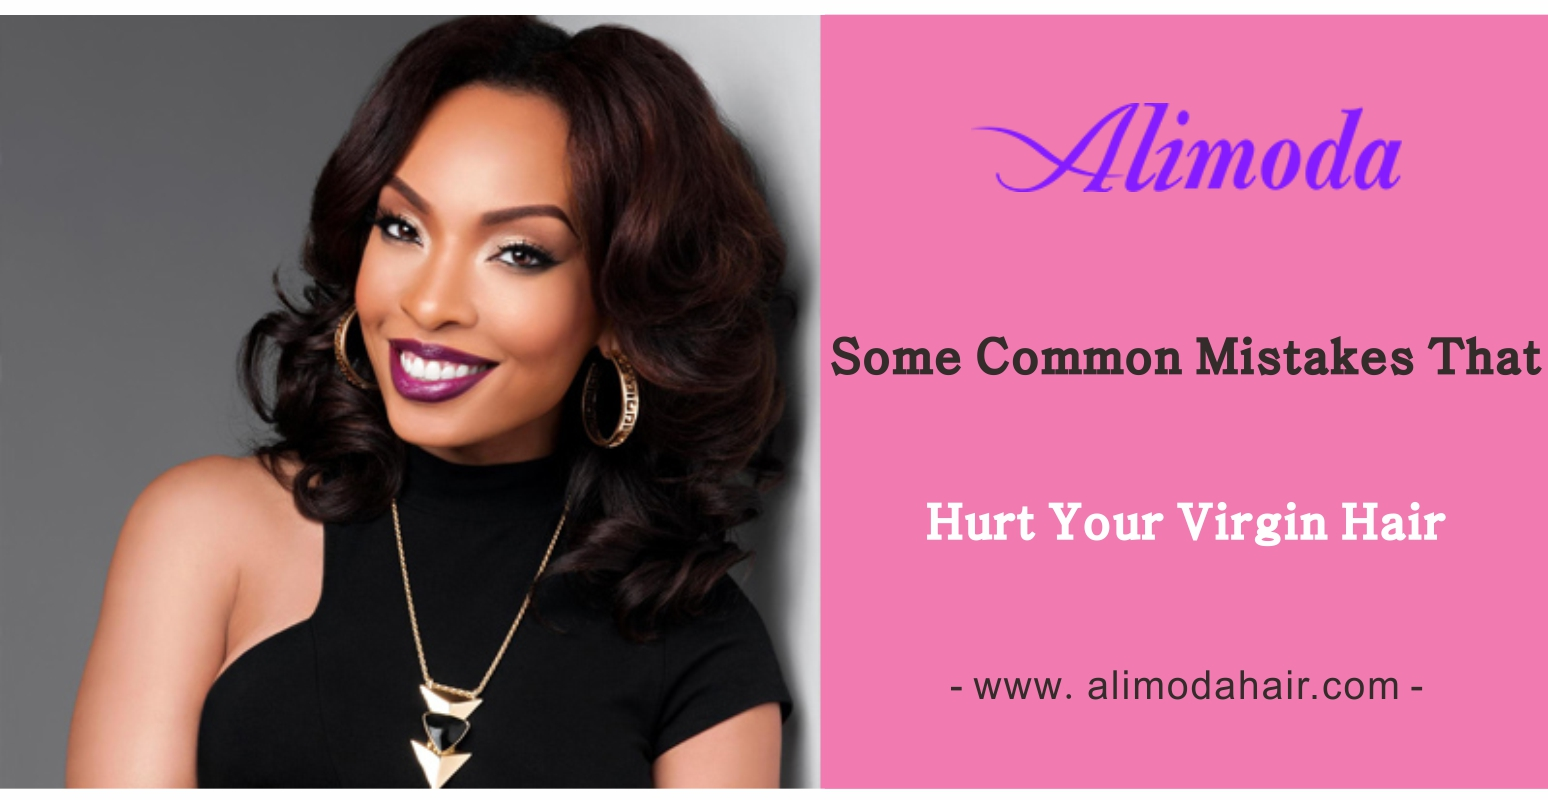 Some common mistakes that hurt your virgin hair